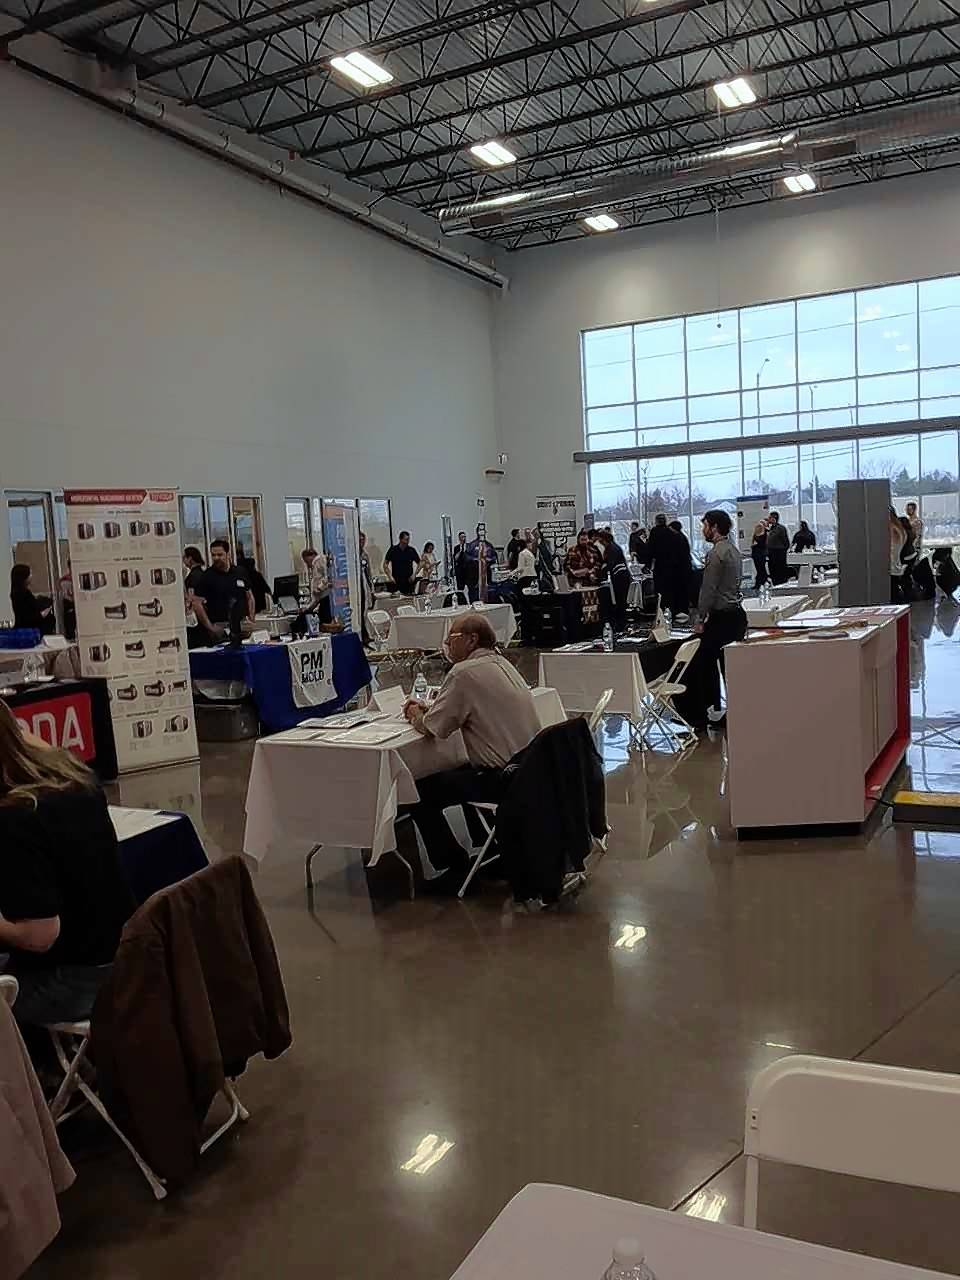 About 50 local employers took part in the Golden Corridor Advanced Manufacturing Partnership's Manufacturing Career Fair at MC Machinery's new headquarters in Elk Grove Village.